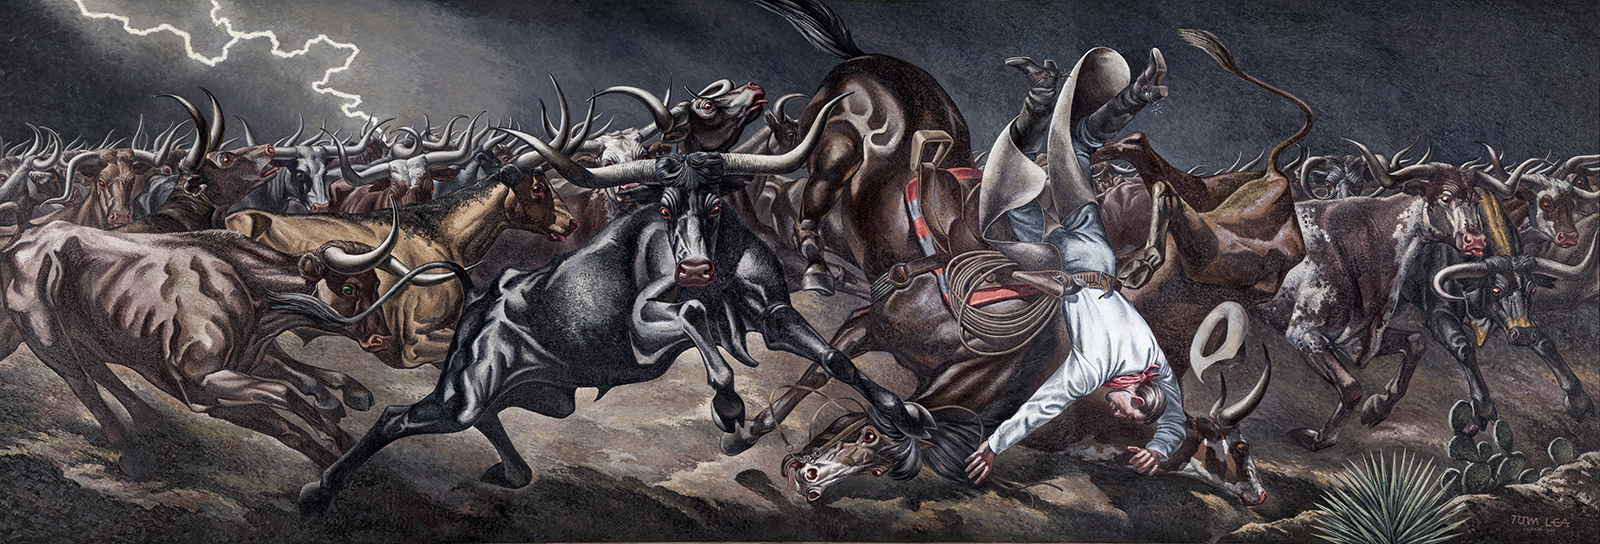 Tom Lea,  Stampede , 1940, oil on canvas, 7' x 17', on loan and displayed with permission from the United States Postal Service